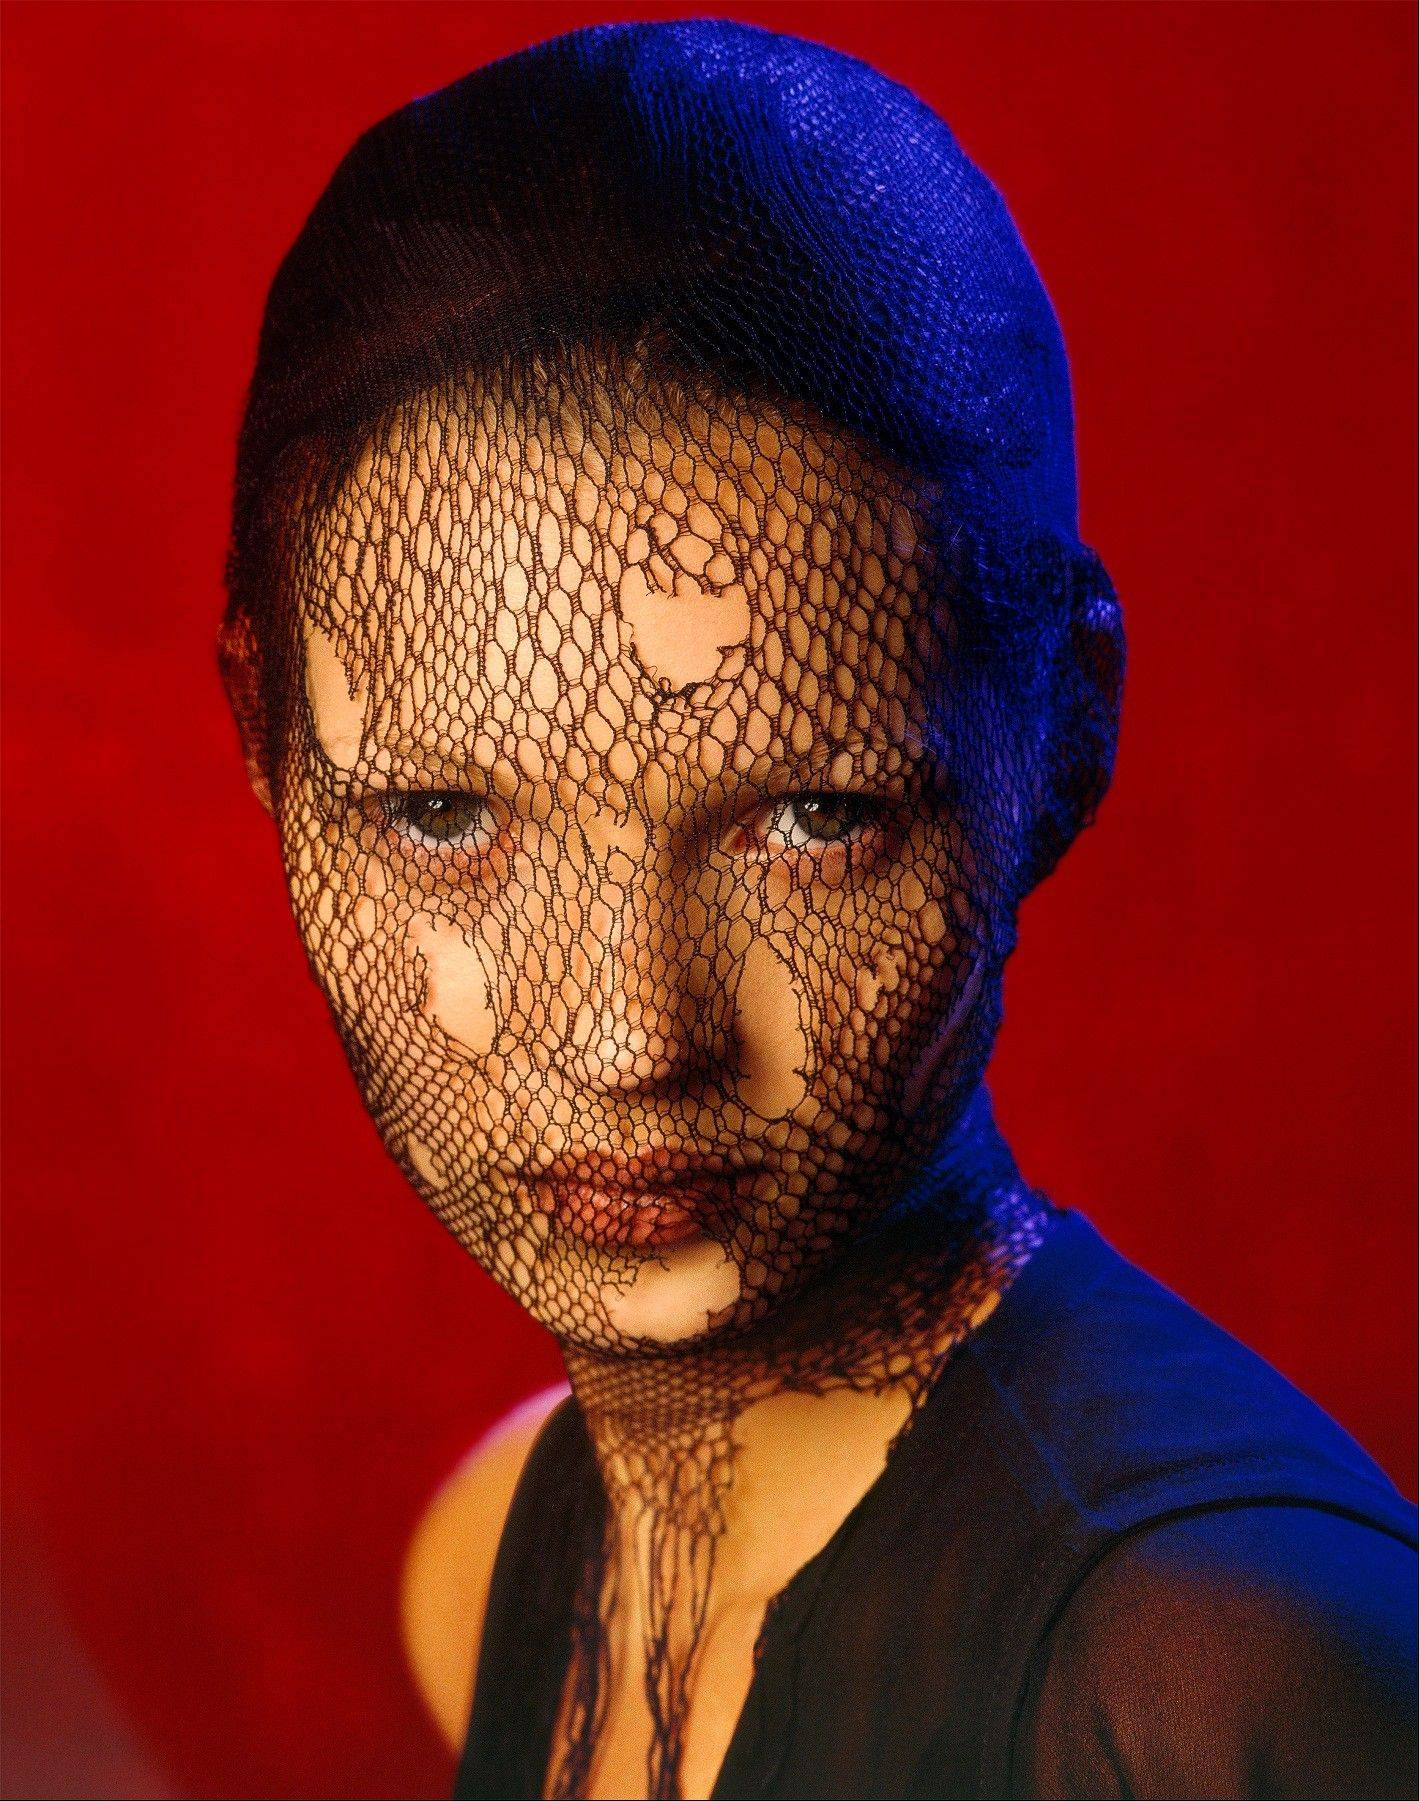 This image made available by Christie�s auction house on Wednesday July 3, 2013 shows an image of British model Kate Moss, �Kate Moss in Torn Veil�, Marrakech, 1993 by Albert Watson. Few people have been photographed more often than Kate Moss, and some of the most famous images of the supermodel are going under the hammer at a Christie�s auction in London on Sept. 25.